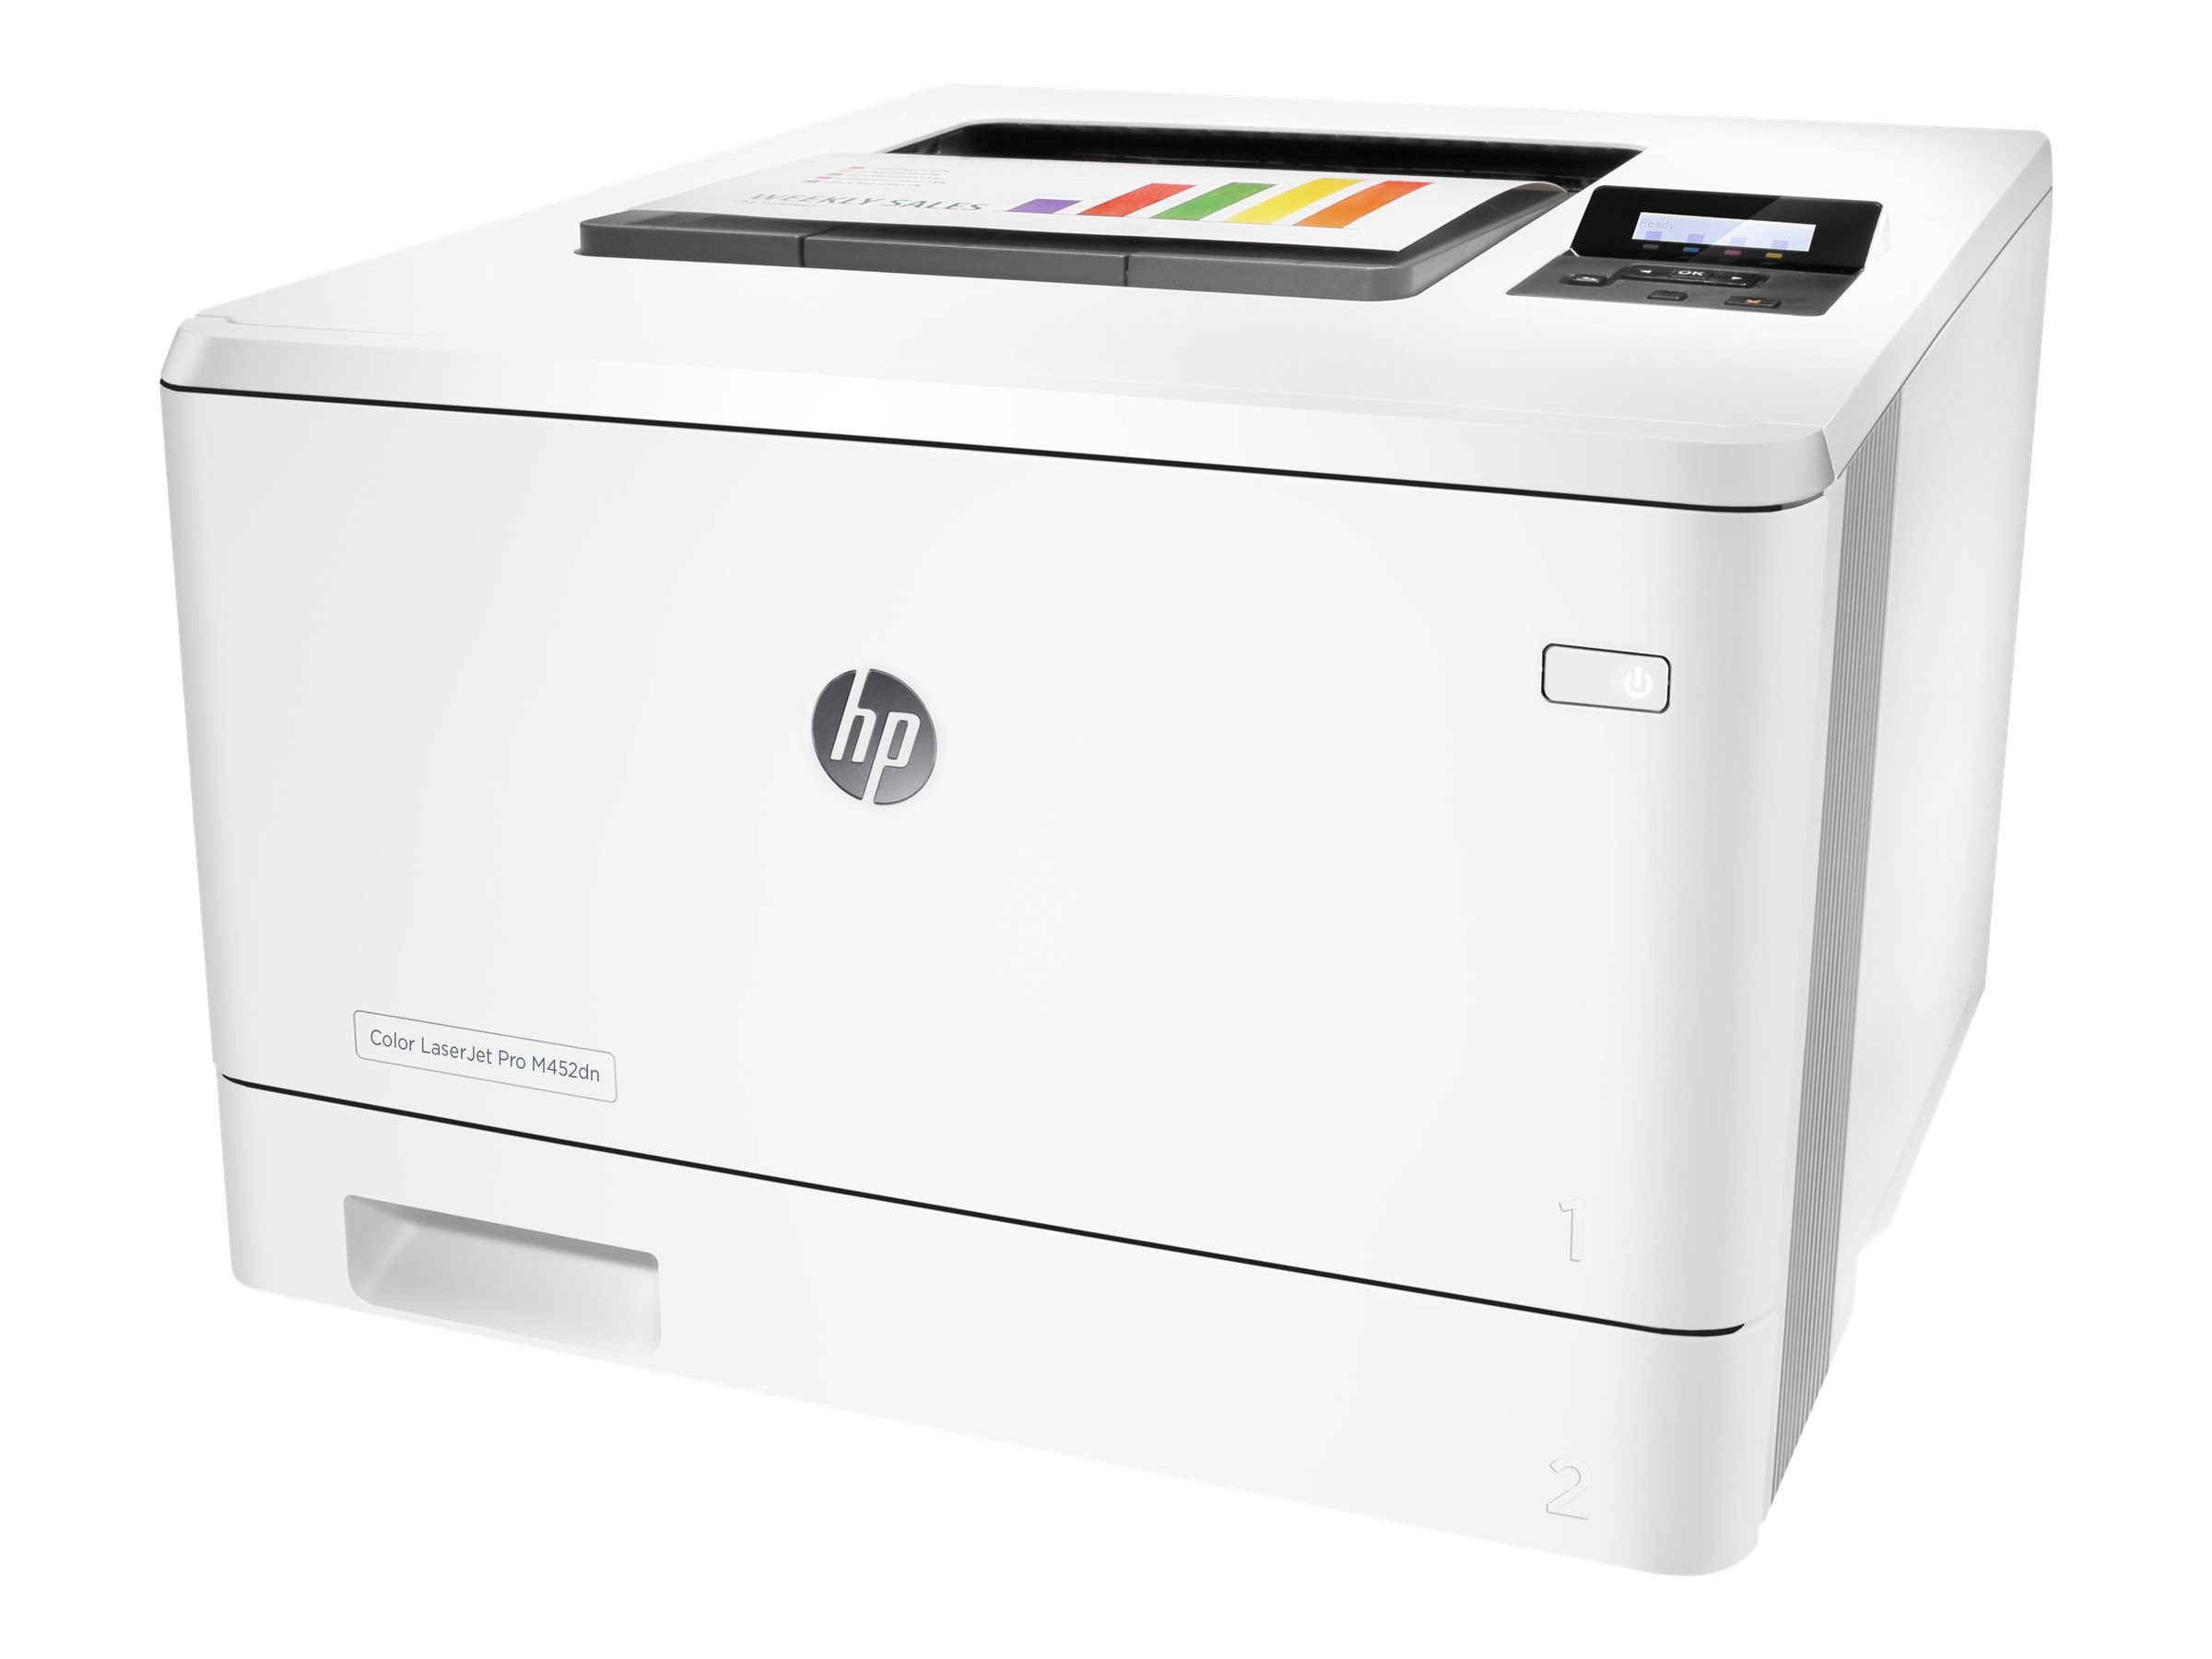 HP Color LaserJet Pro M452dn Printer ($399-$130 instant rebate=$269. expires 5 31), CF389A#BGJ, 30617061, Printers - Laser & LED (color)